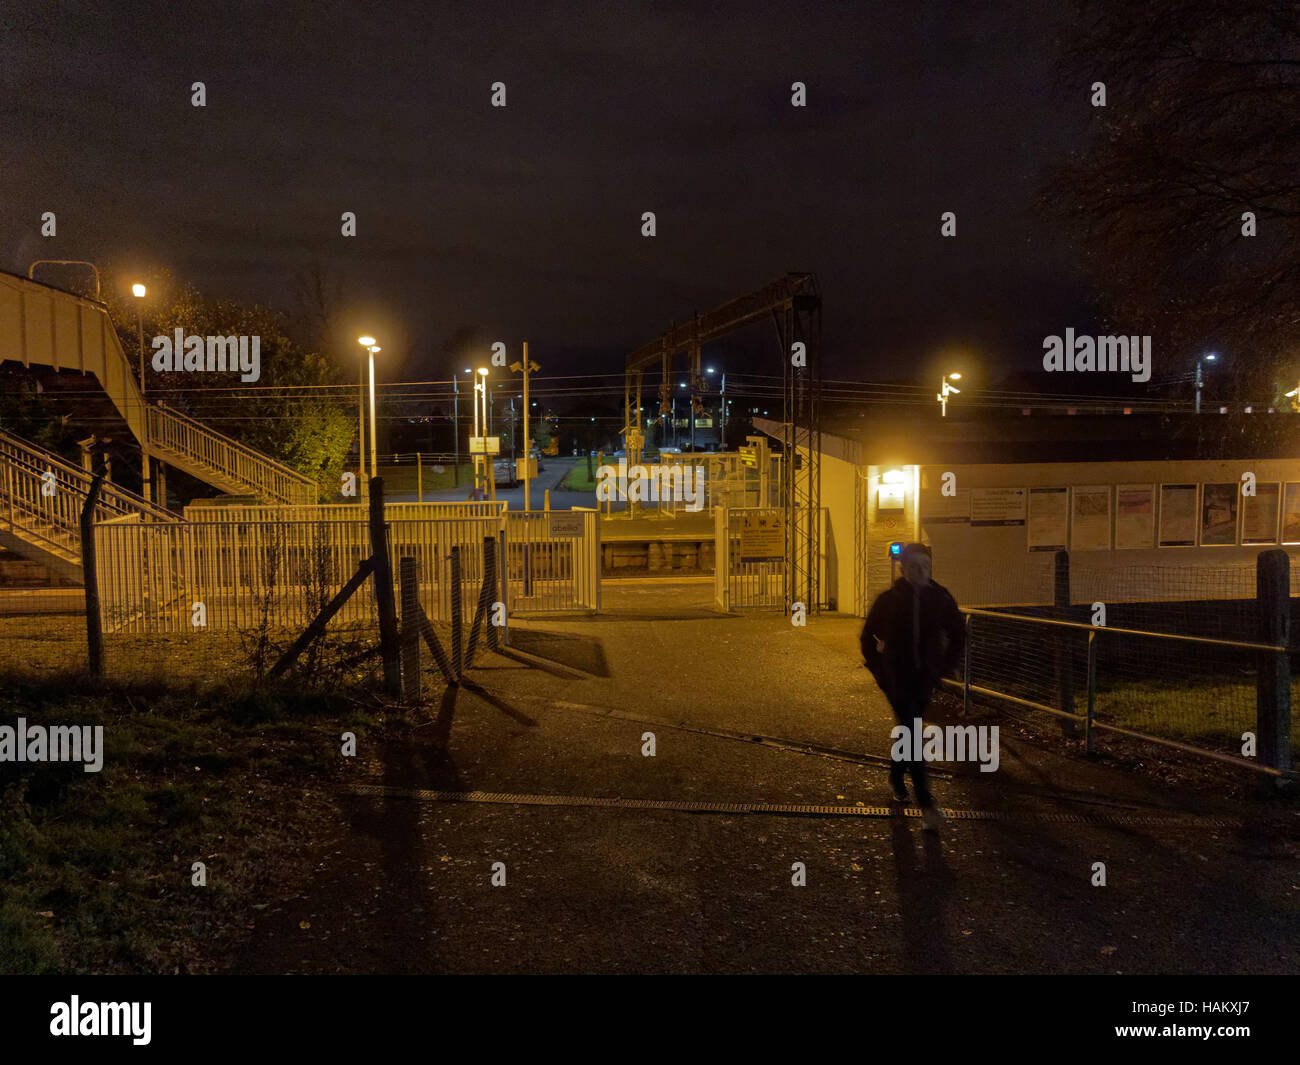 drumry railway station scotrail at night Lone person in the dark - Stock Image